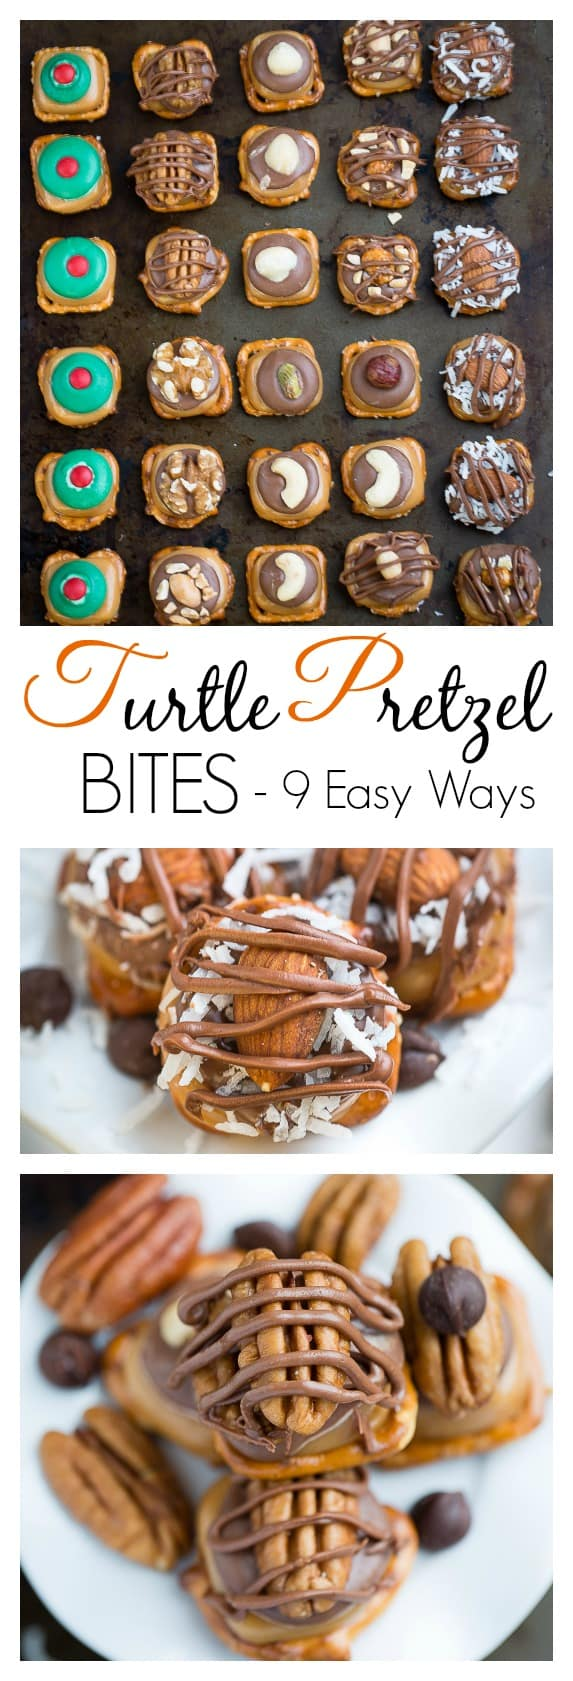 Turtle Pretzel Bites with 9 Easy Ways are perfect for your holiday cookie platter.